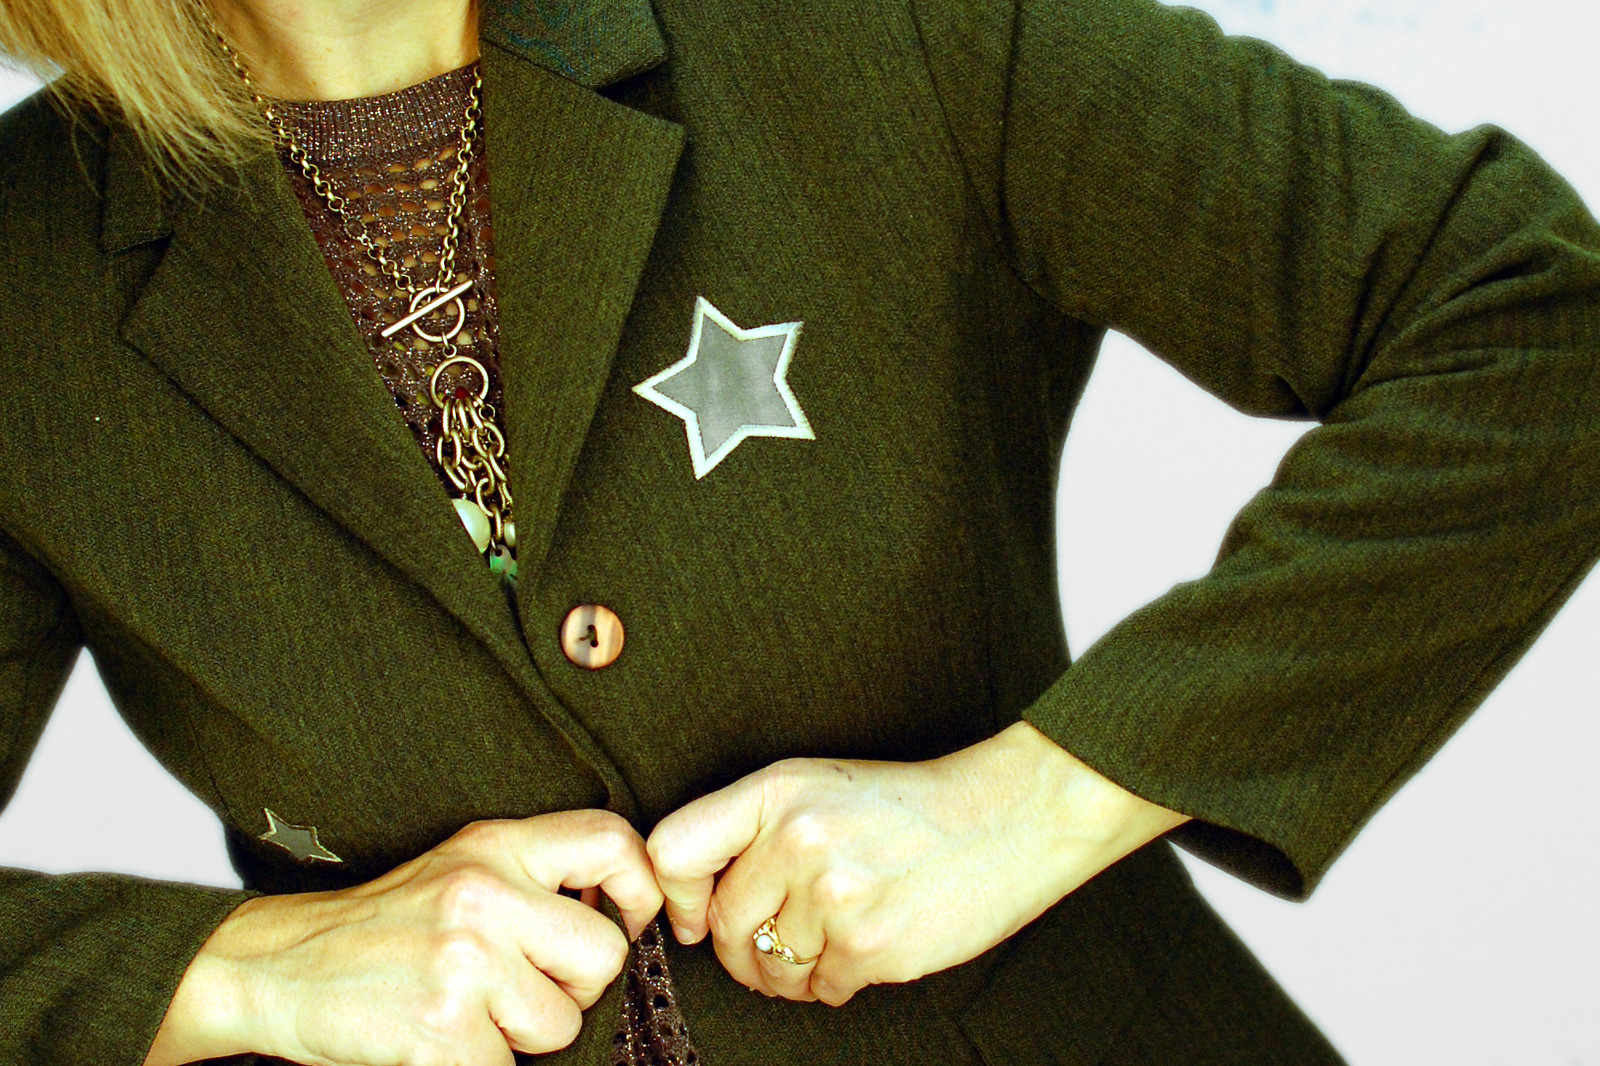 olive star applique jacket daily outfit blog ootd whatiwore2day